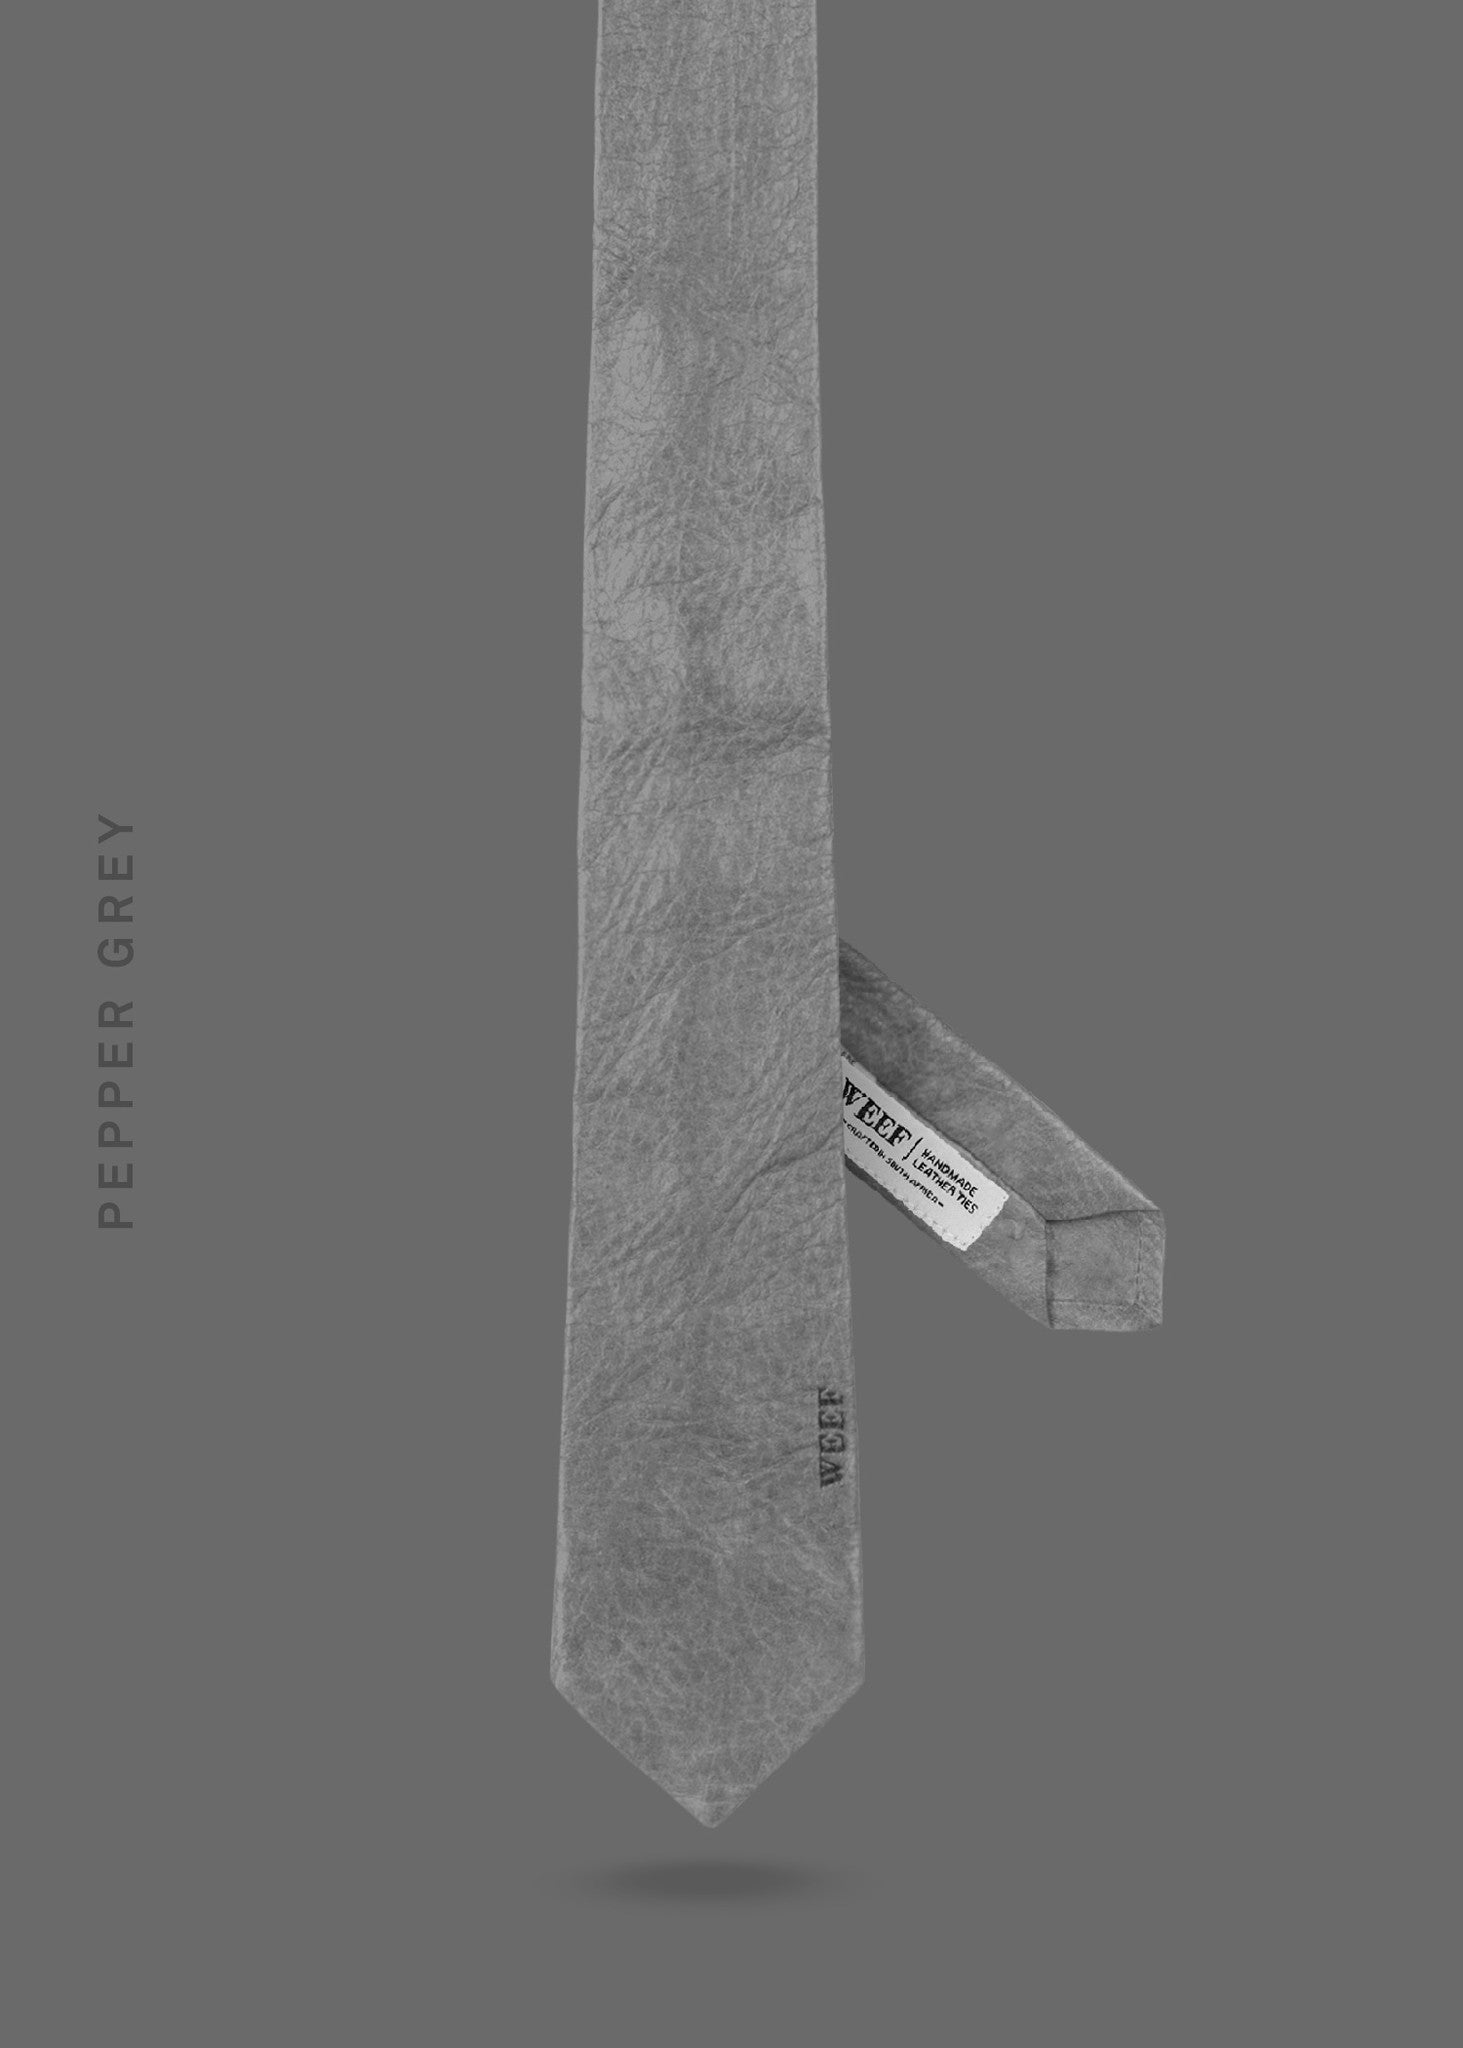 This pepper grey WEEF handmade leather tie is a great present or gift idea for dapper and stylish gentlemen for fathers day, valentines day or Christmas.